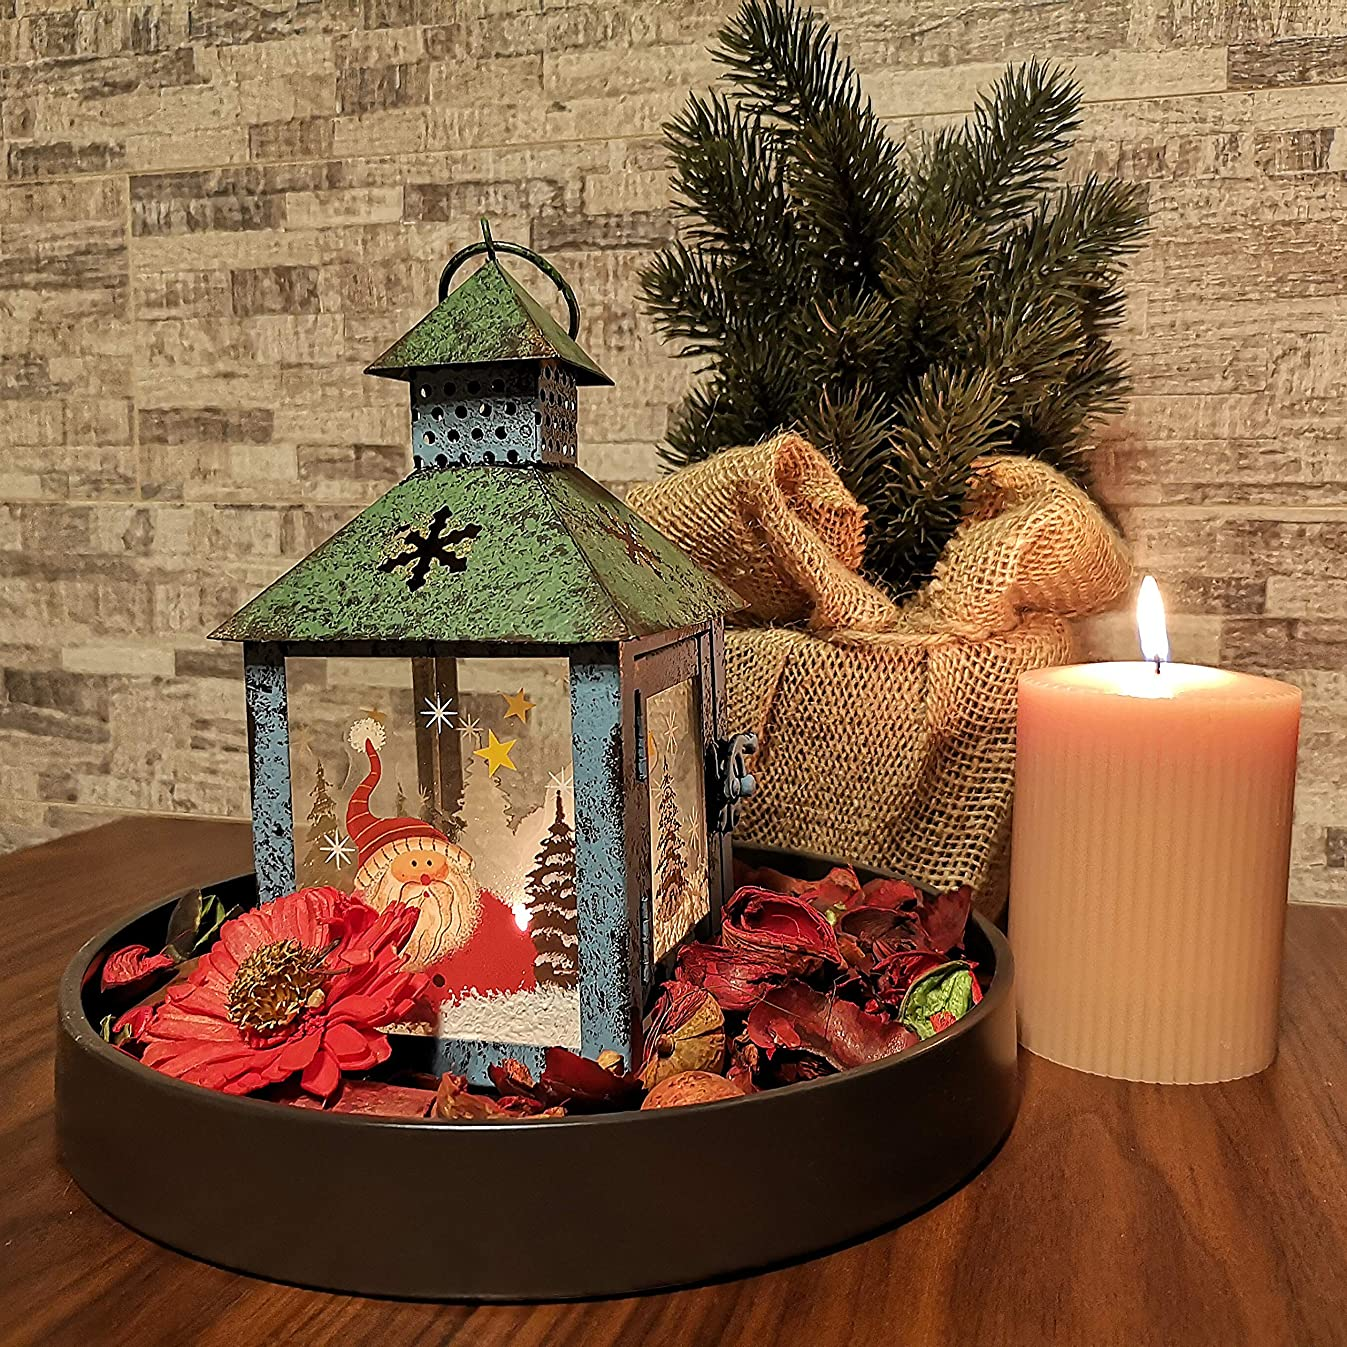 Christmas Candle Lantern Decoration - Santa Decorative Candle Holder, Rustic,Green, Hand Painted Metal and Glass - Table Centerpiece or Hanging Lantern Holder, Christmas Home Decorations